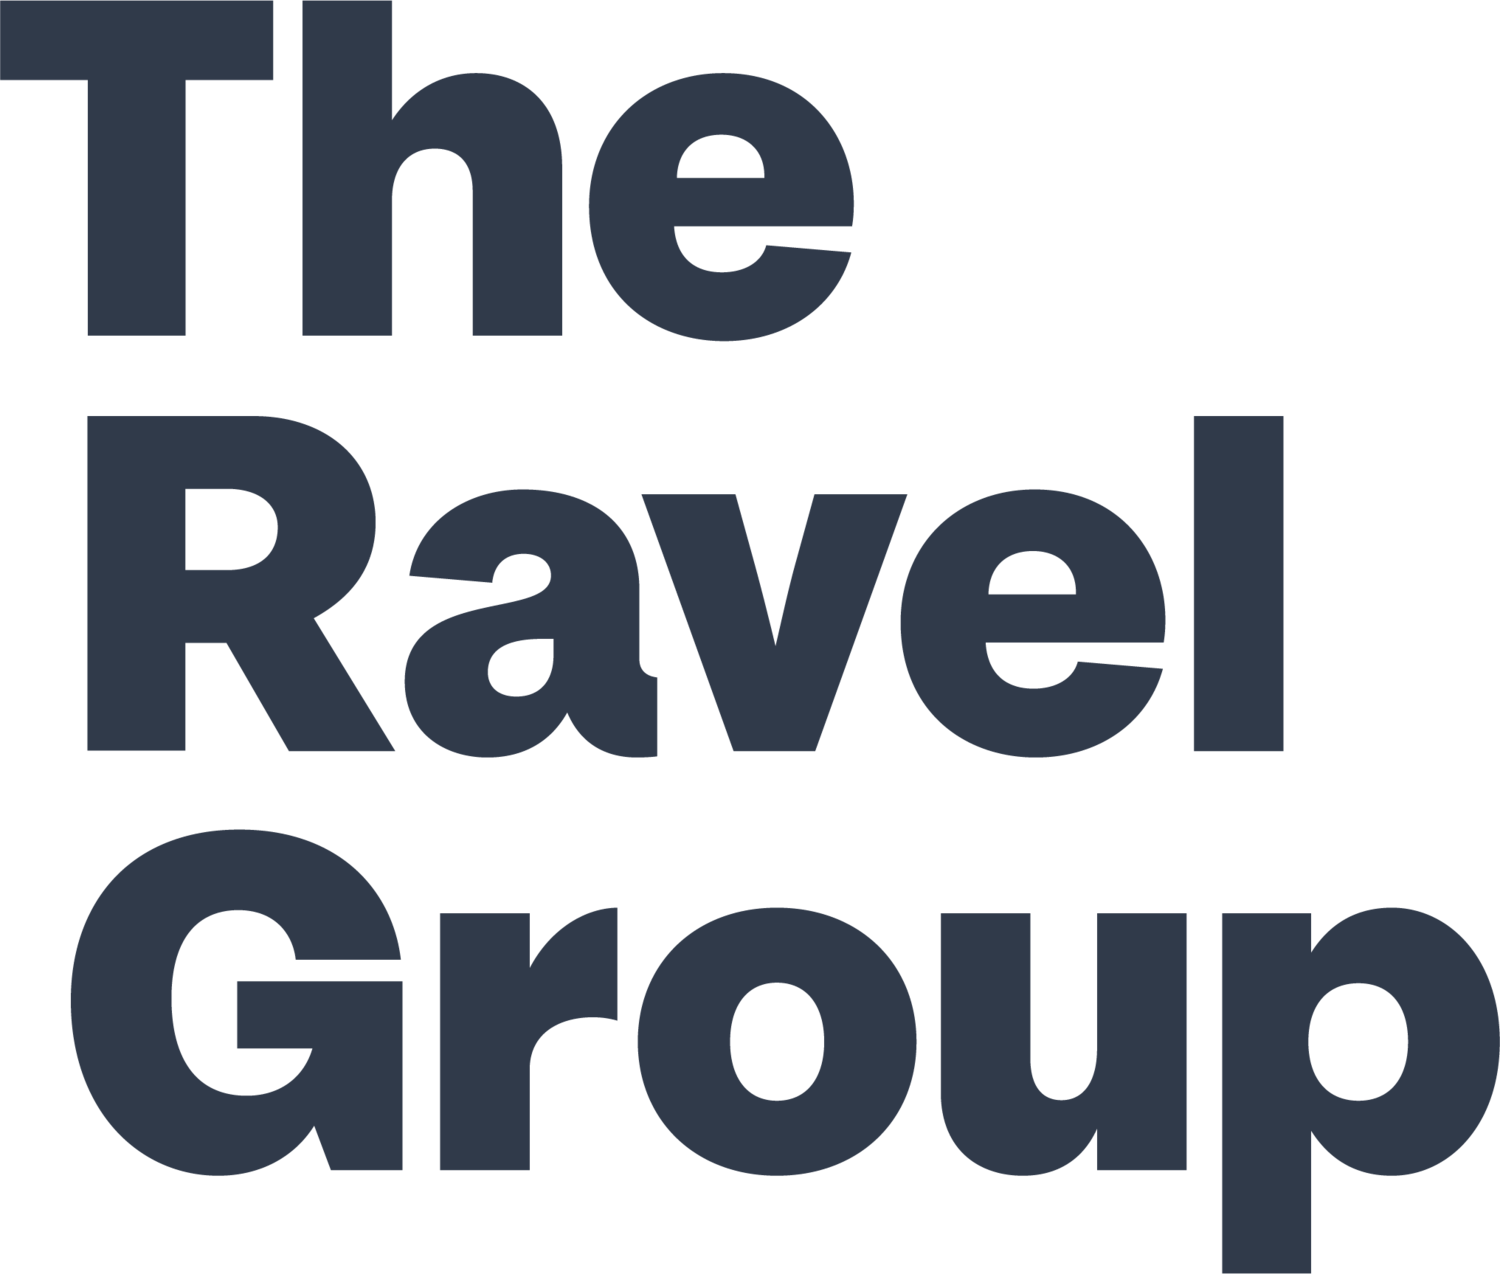 The Ravel Group